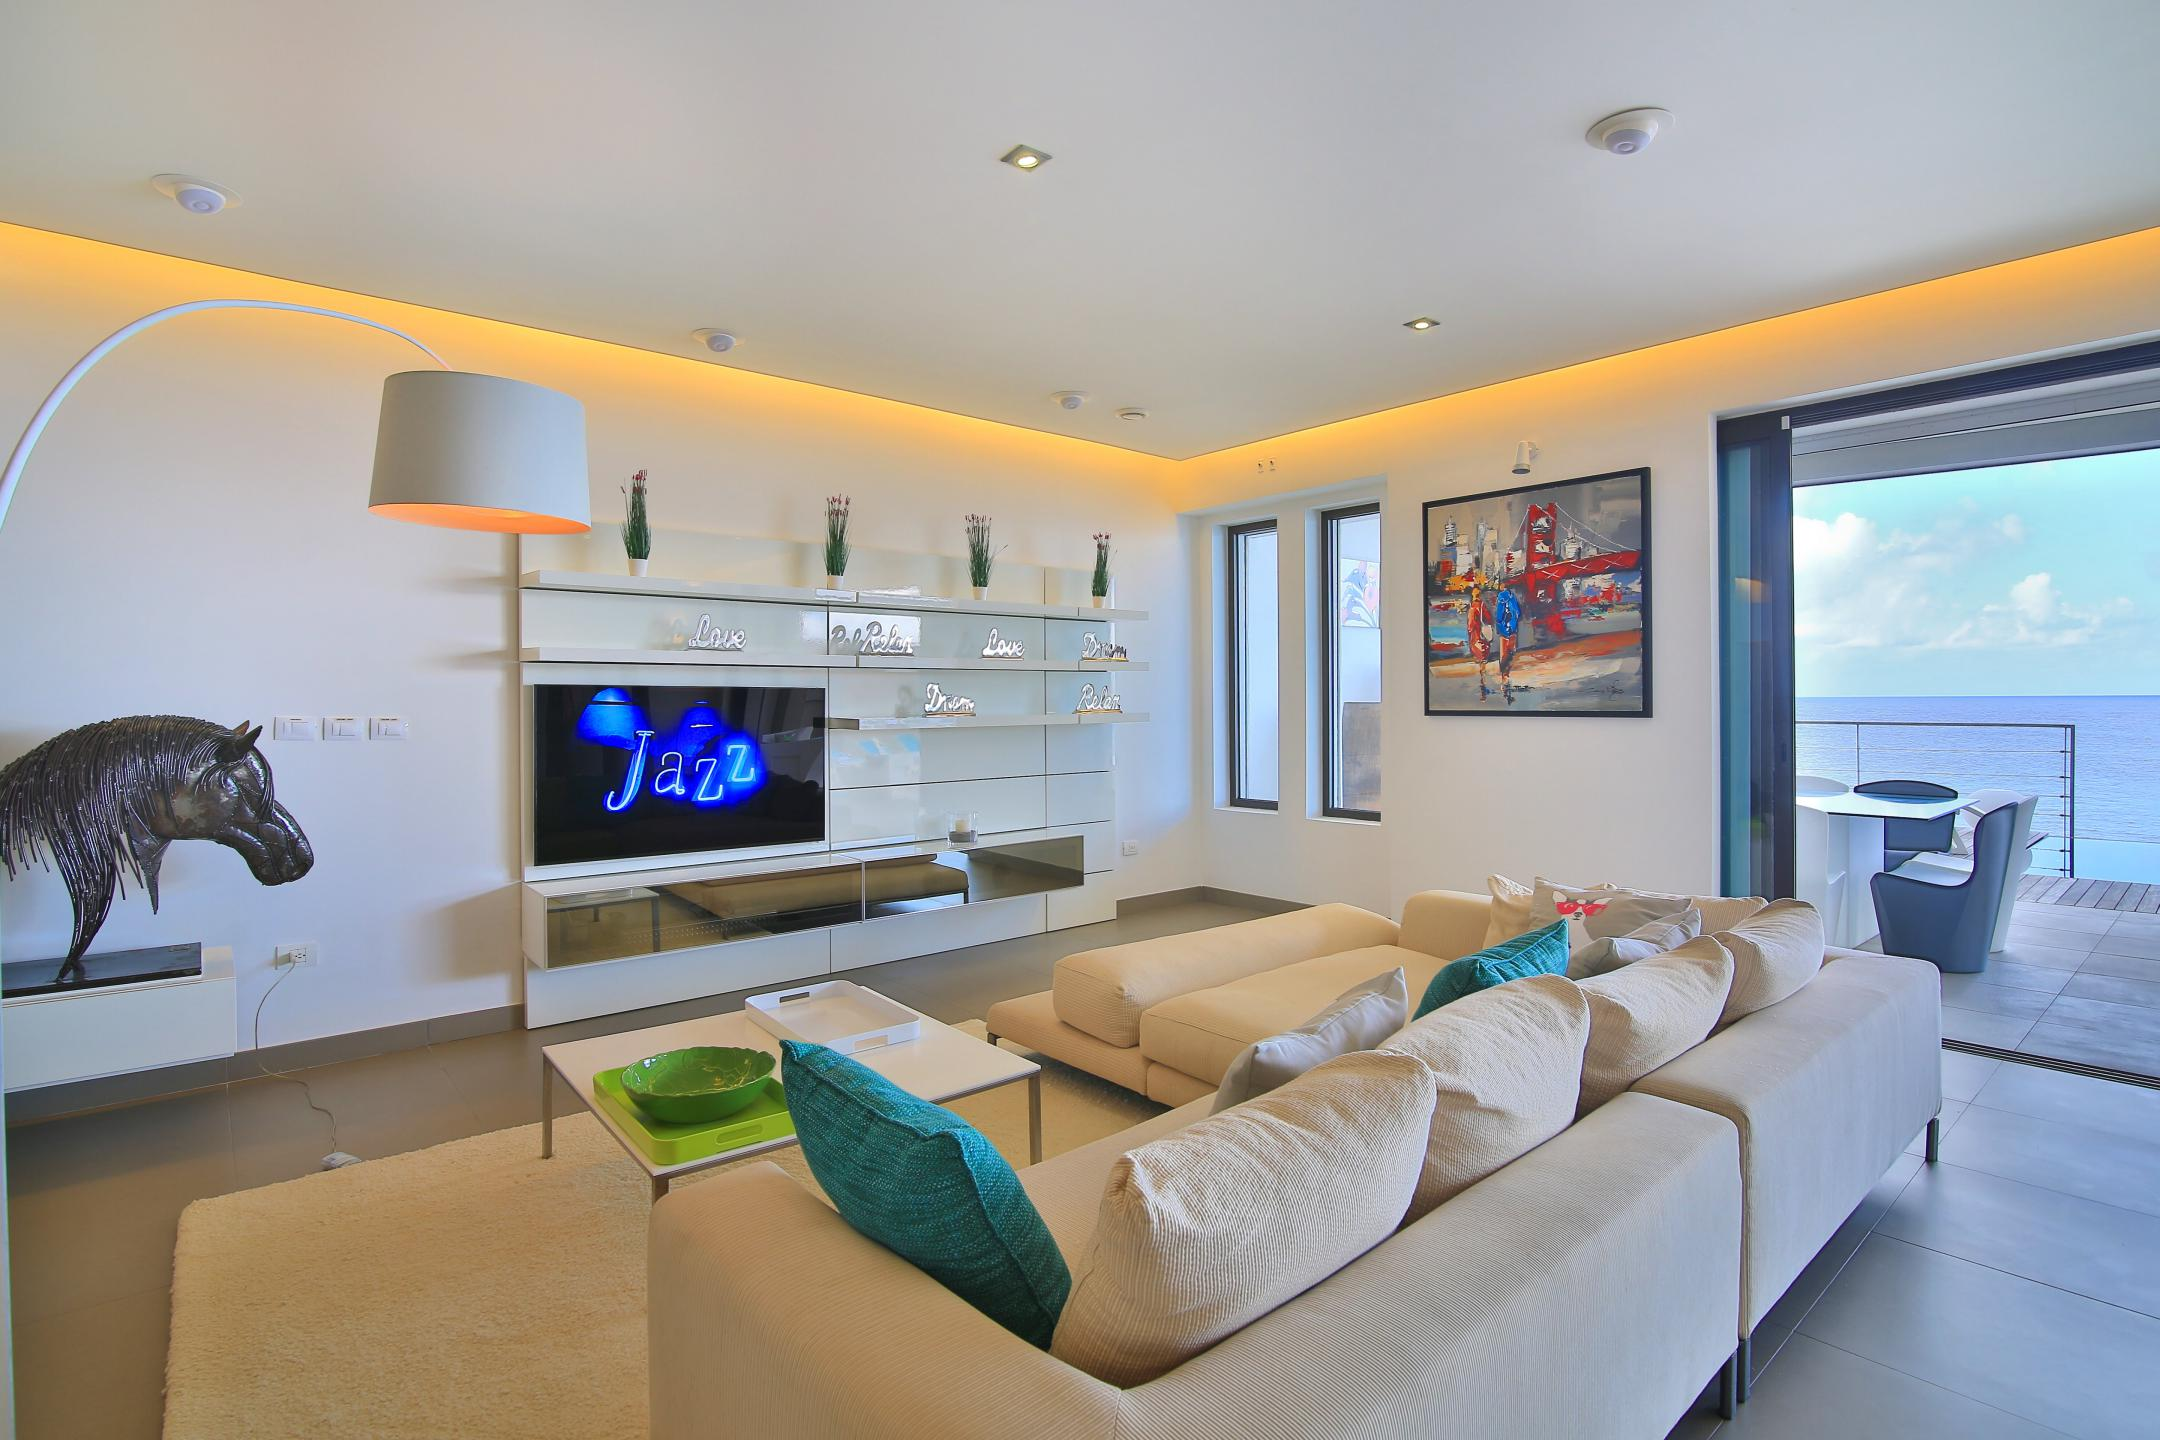 Beacon hill apartment 3 bedroom 3 bath 291 simpson for 12 by 16 room